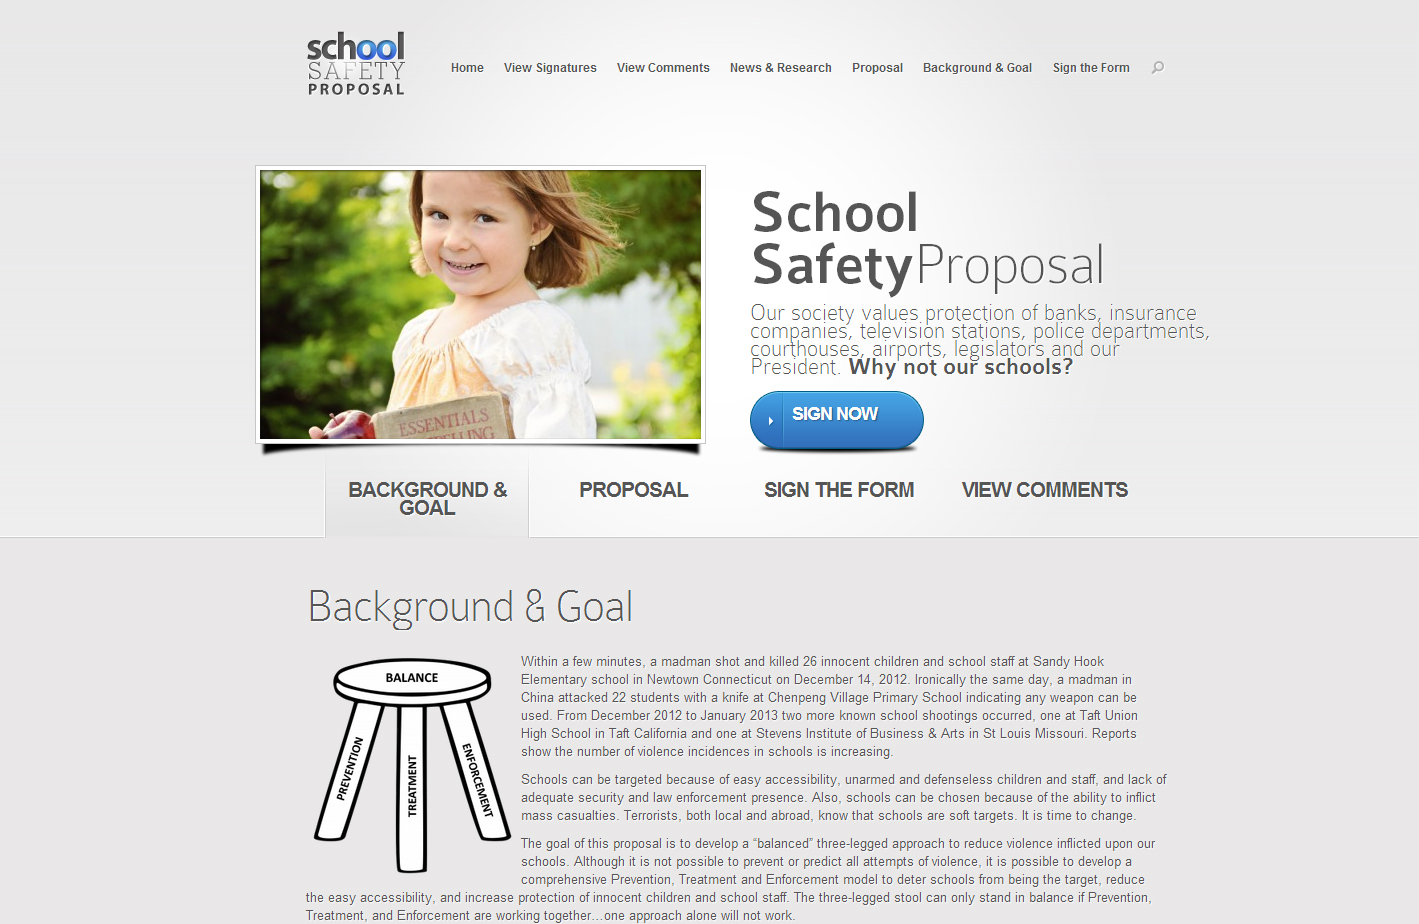 School Safety Proposal